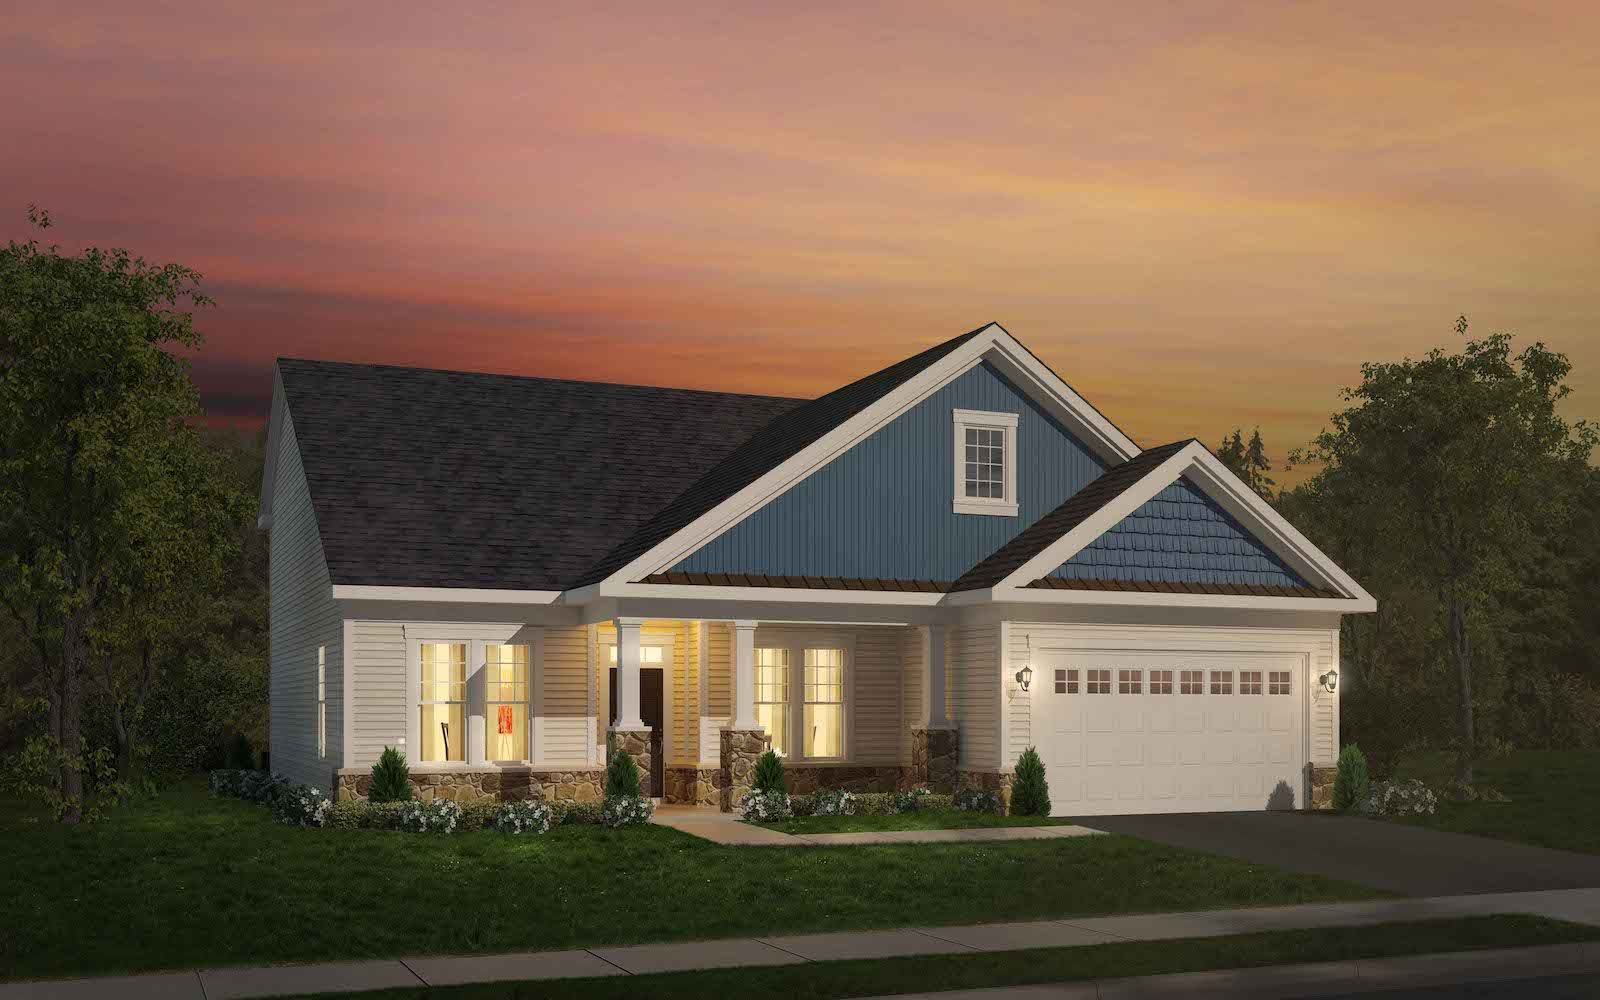 Exterior:Elevation 2 of the Pearson a home design at Easton Village by Brookfield Residential